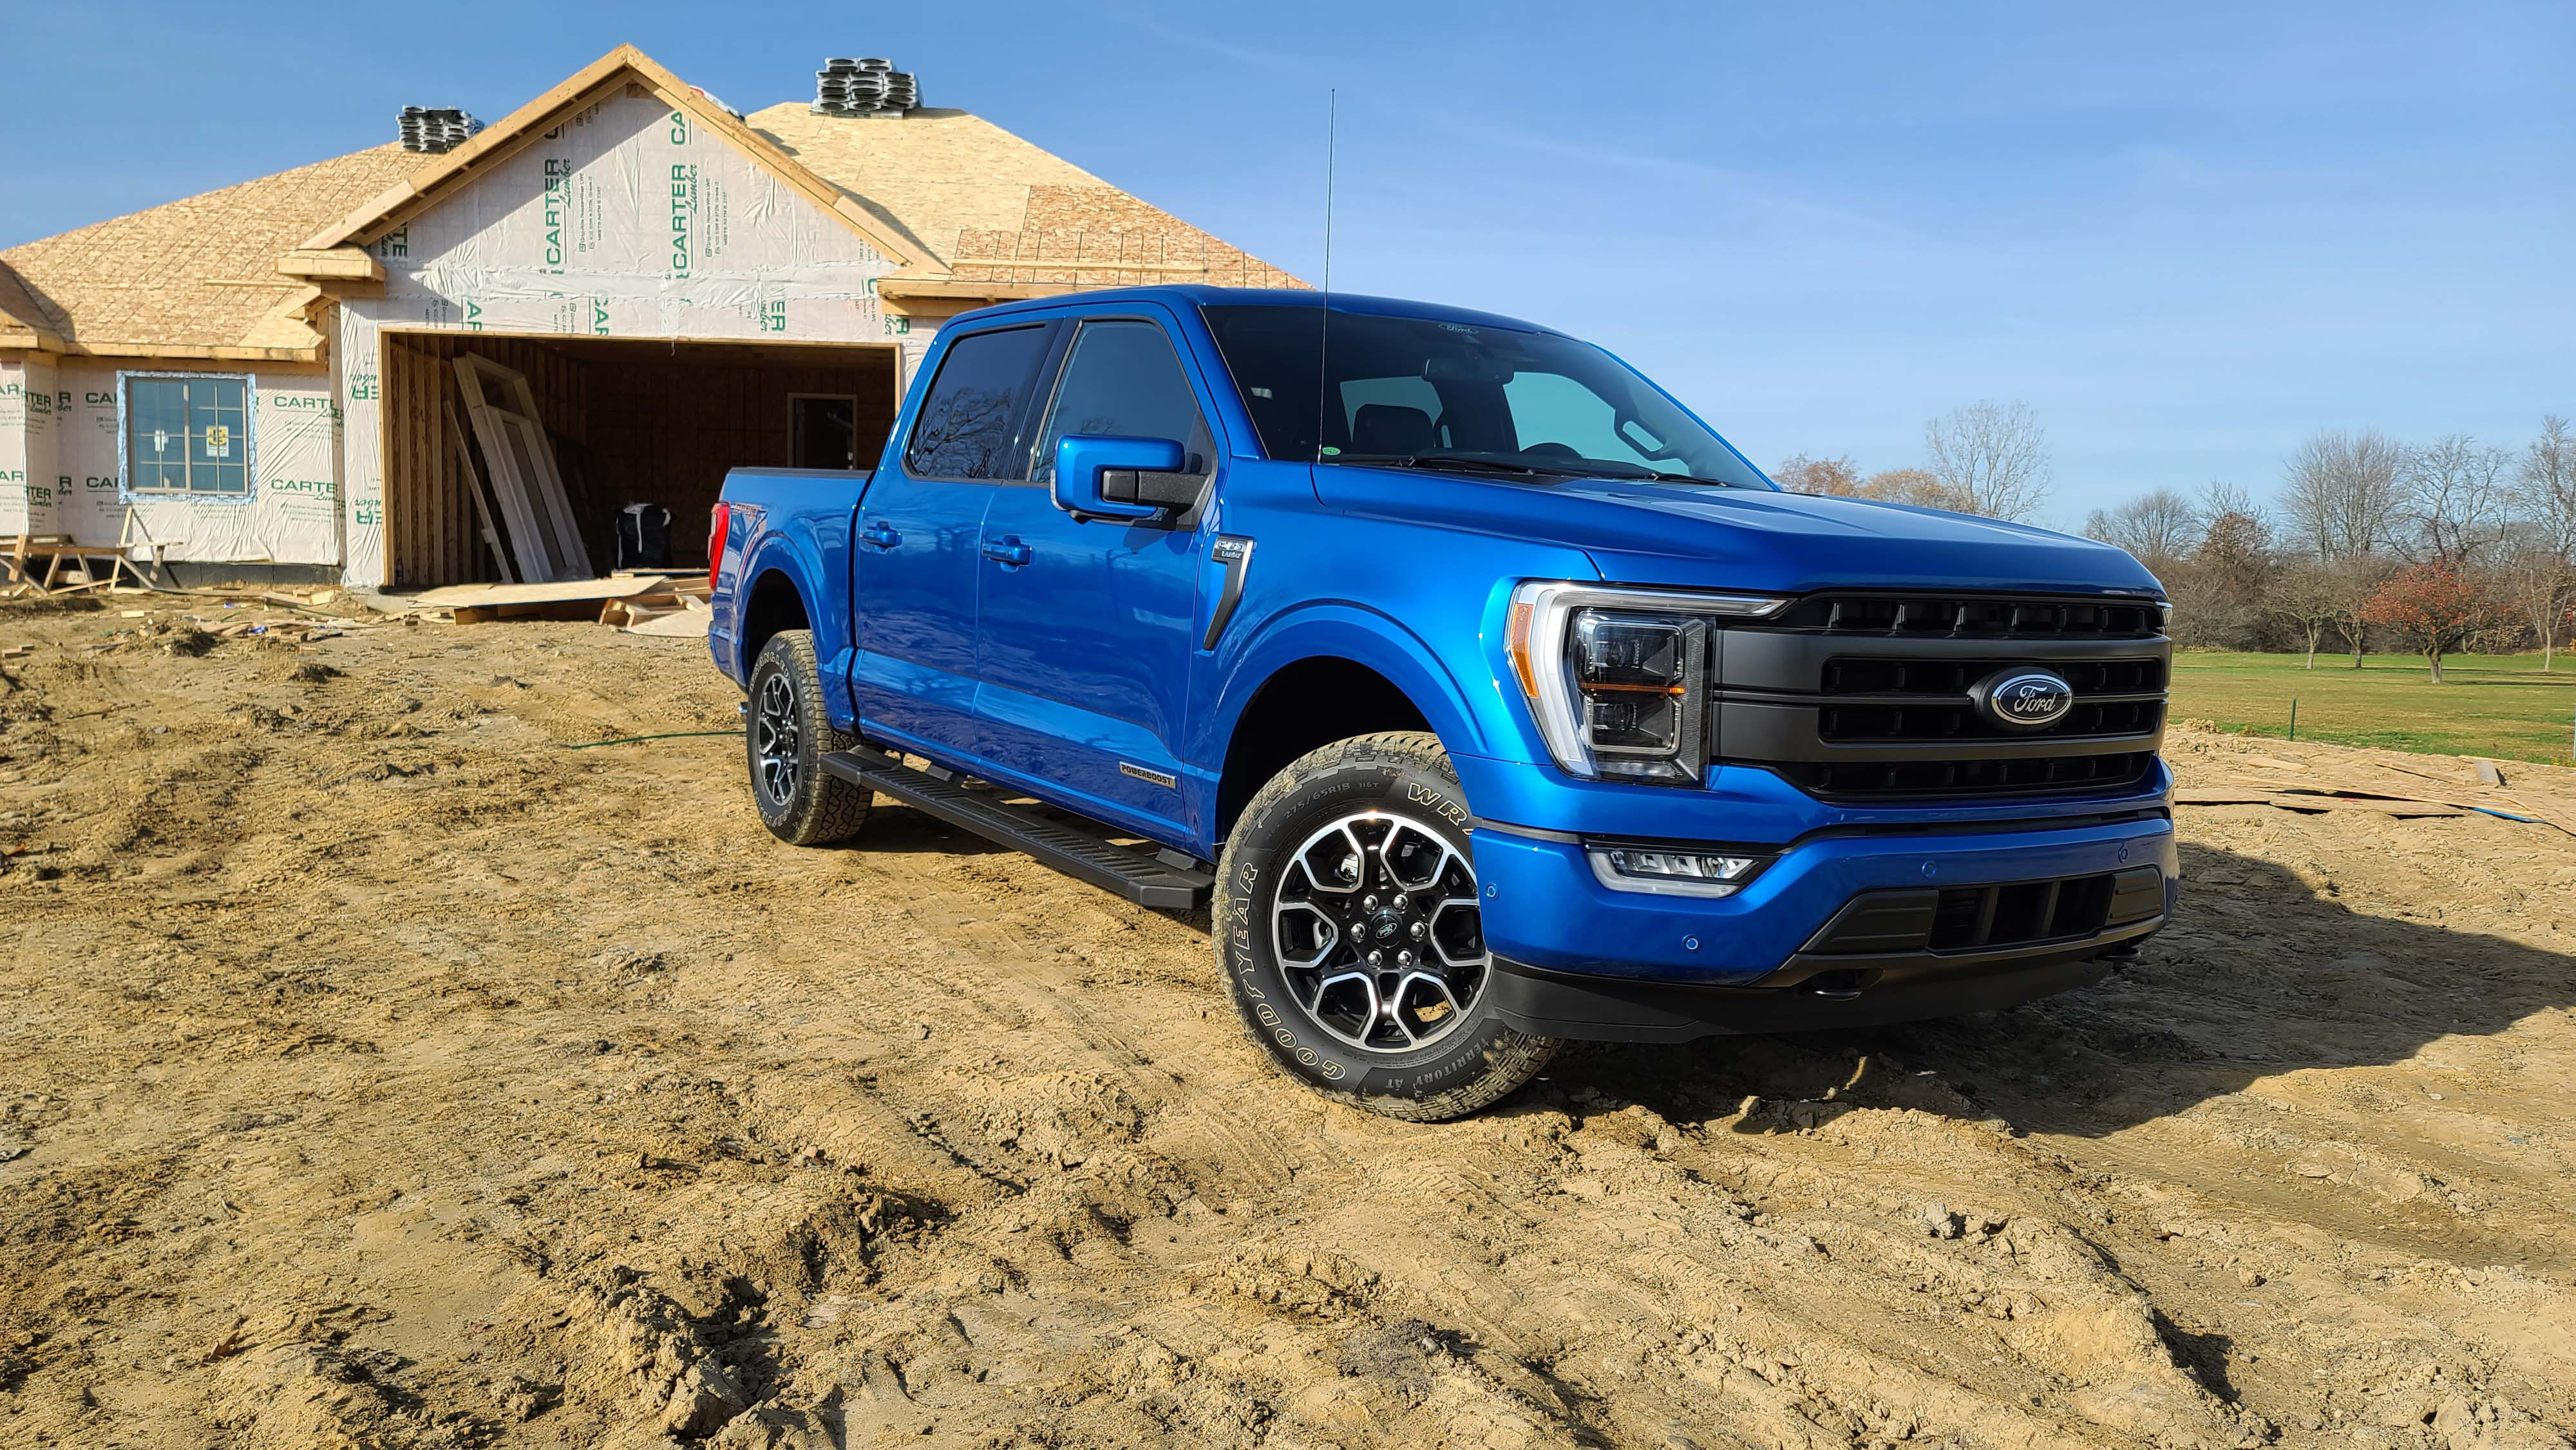 Ford tells dealers to use F-150s with generators to help Texans without power 2